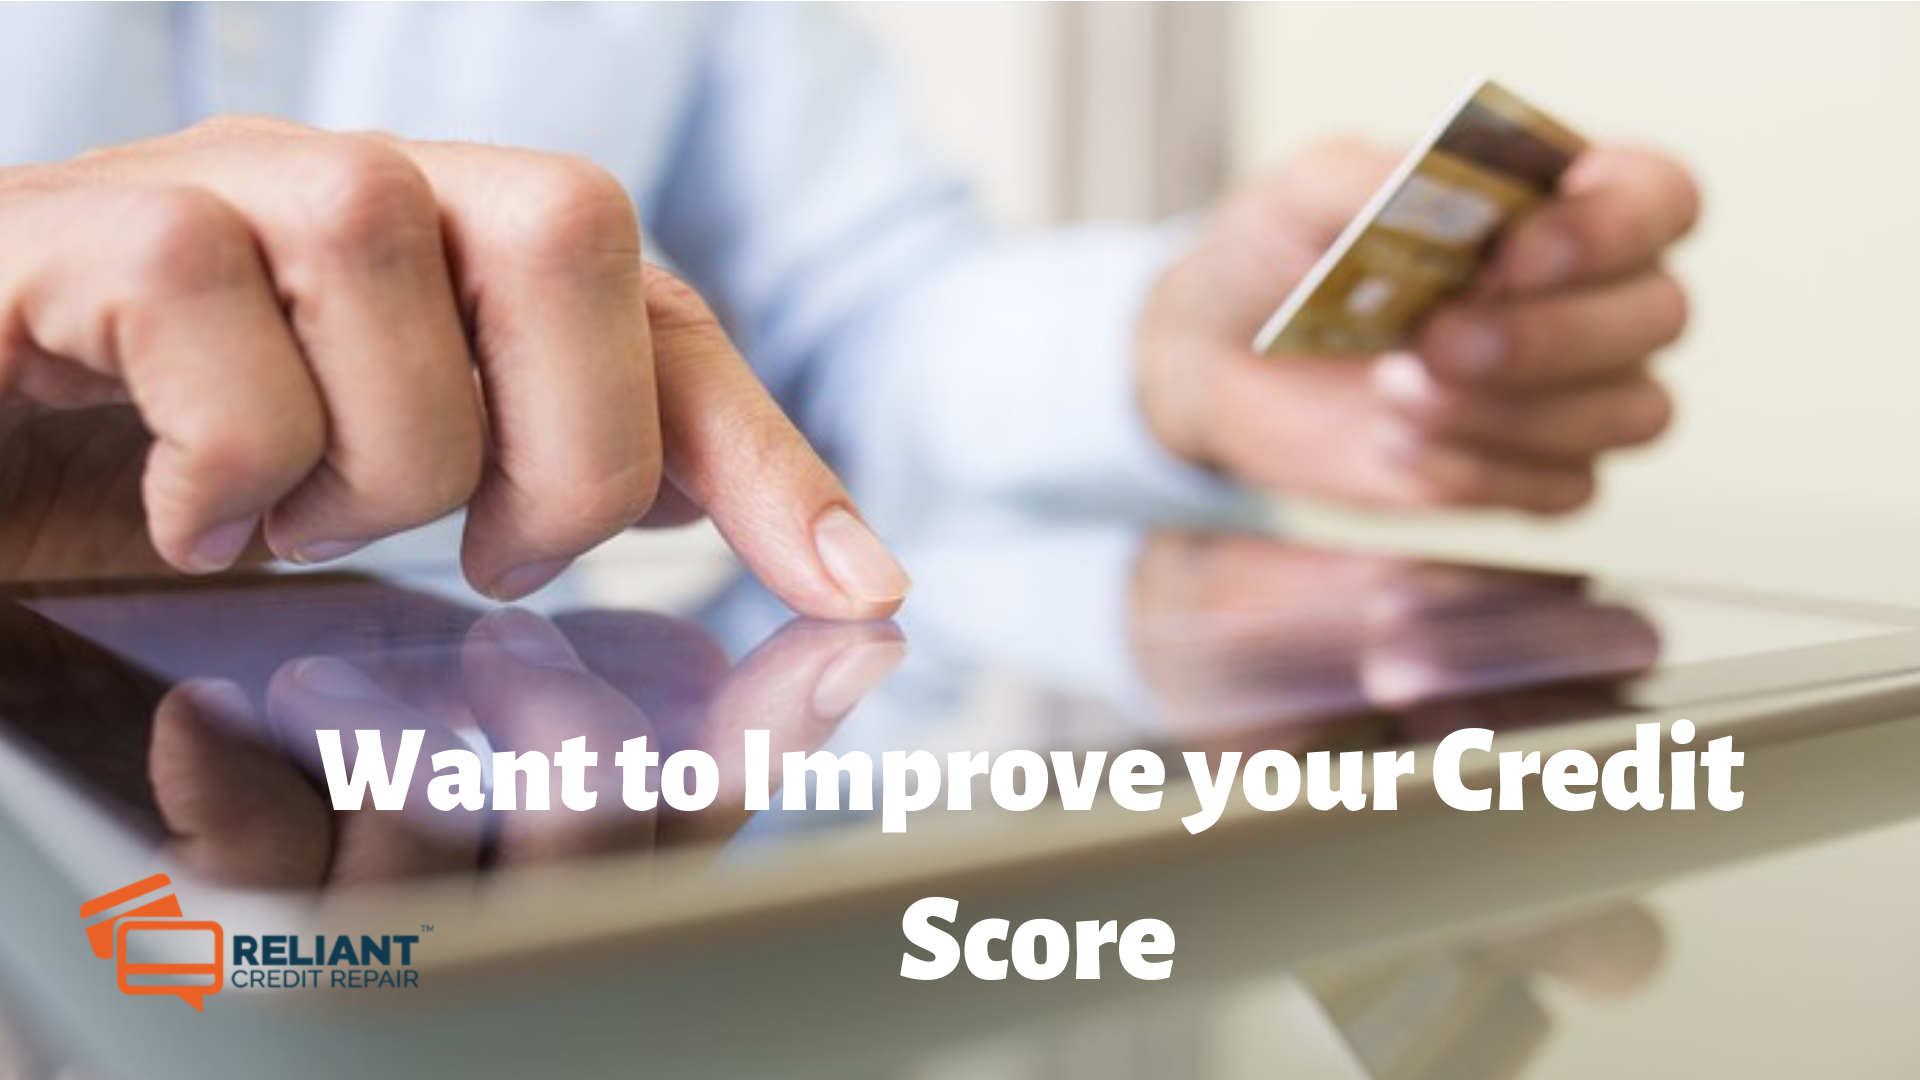 Want to Improve your Credit Score